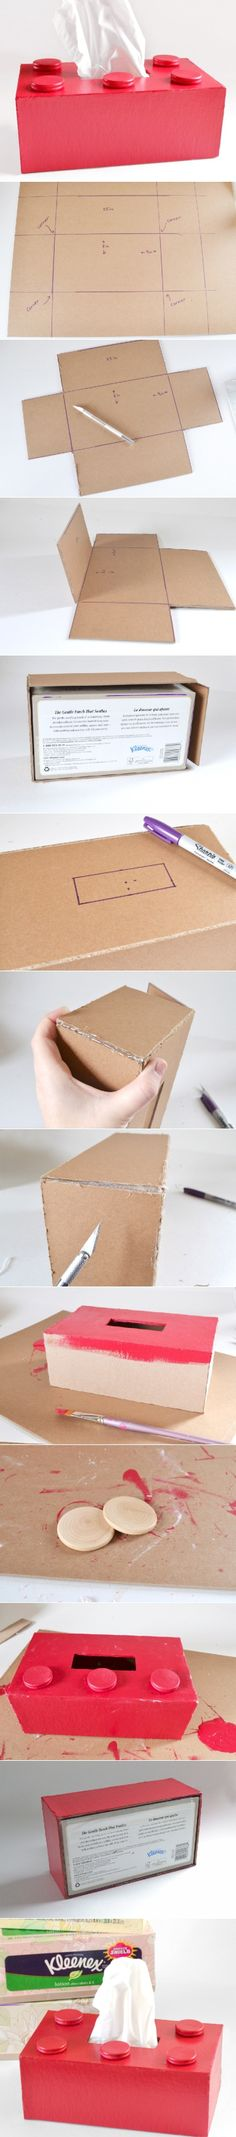 DIY Lego Tissue Box | DIY Creative Ideas